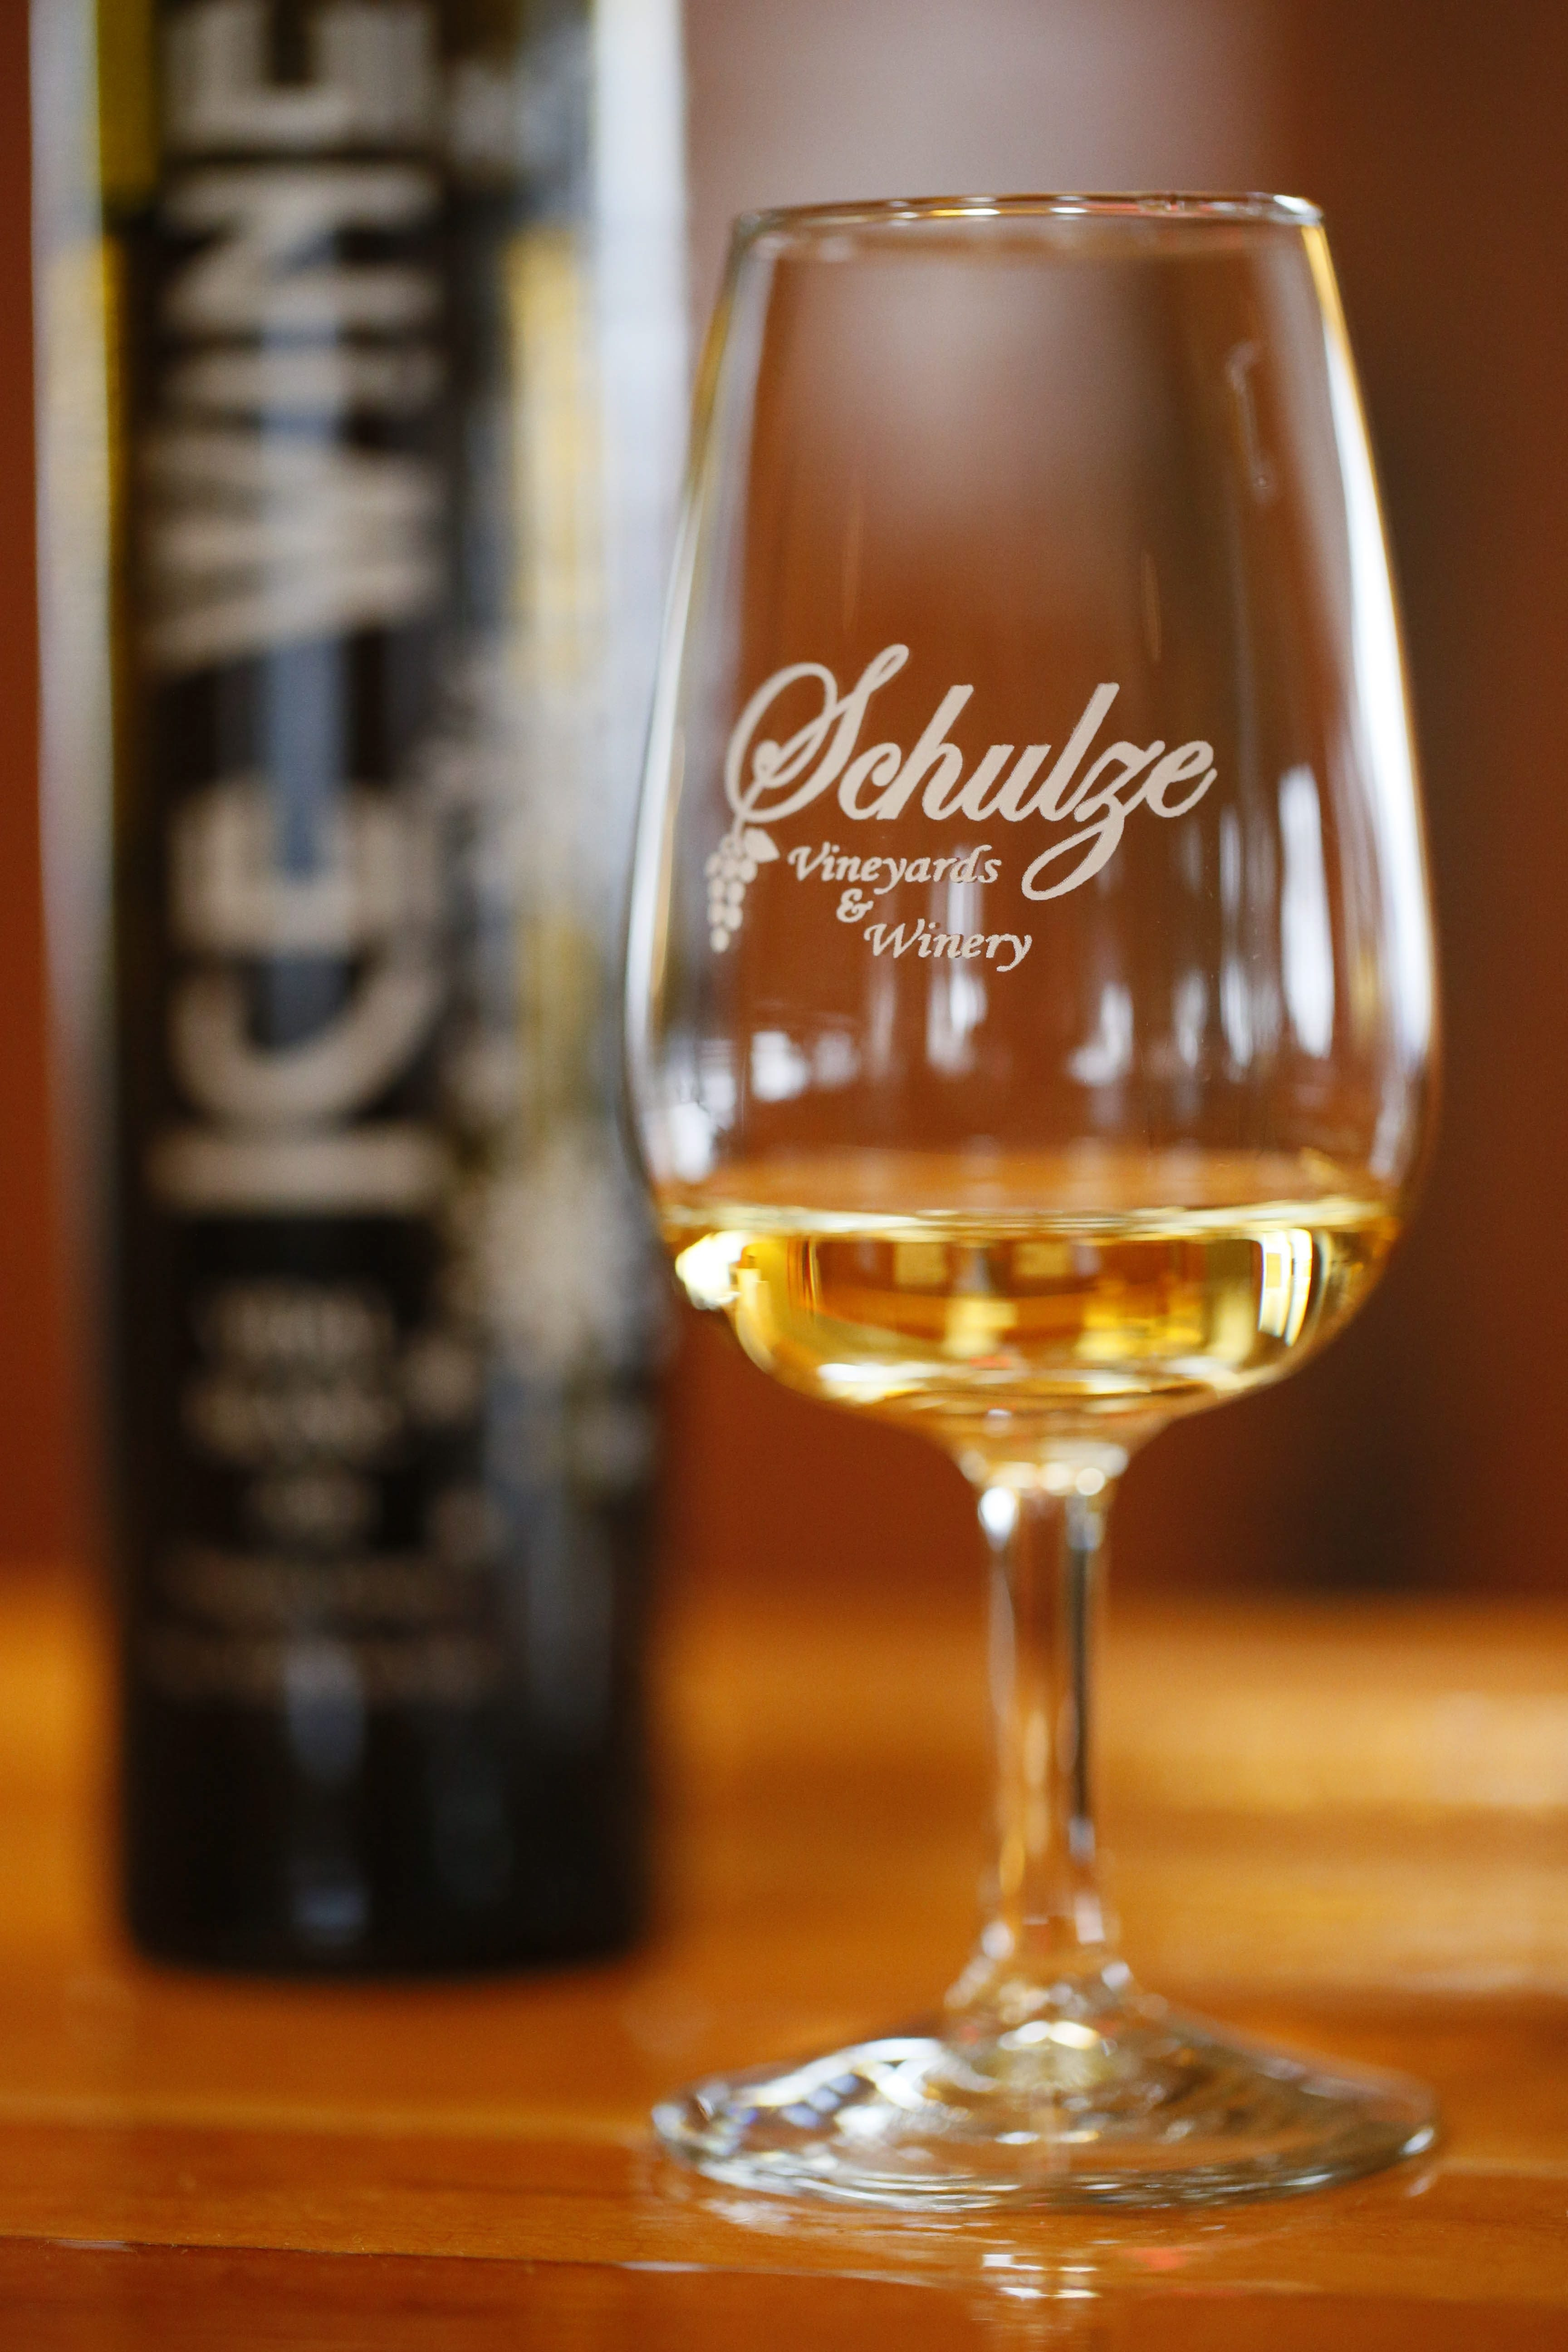 Schulze Vineyards in Newfane will be among the wineries participating in wine and healthy food pairings along the Niagara Wine Trail.